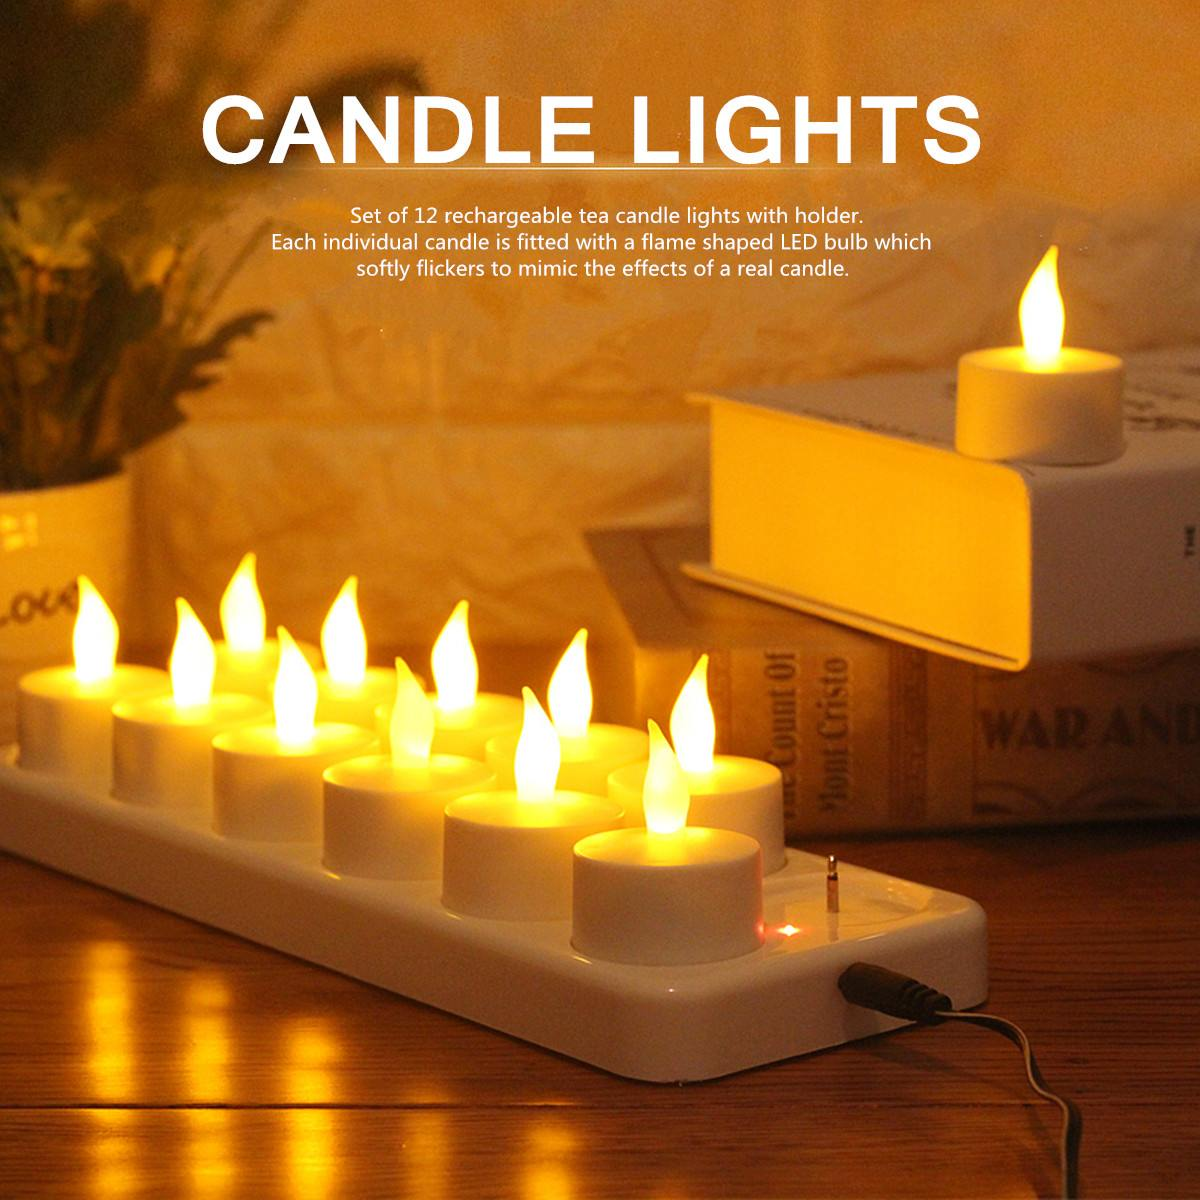 12 Rechargeable Flickering LED Tea Lights Candles With Holder For Dinner Wedding Flame Shaped LED Bulb for Weddings Partys12 Rechargeable Flickering LED Tea Lights Candles With Holder For Dinner Wedding Flame Shaped LED Bulb for Weddings Partys